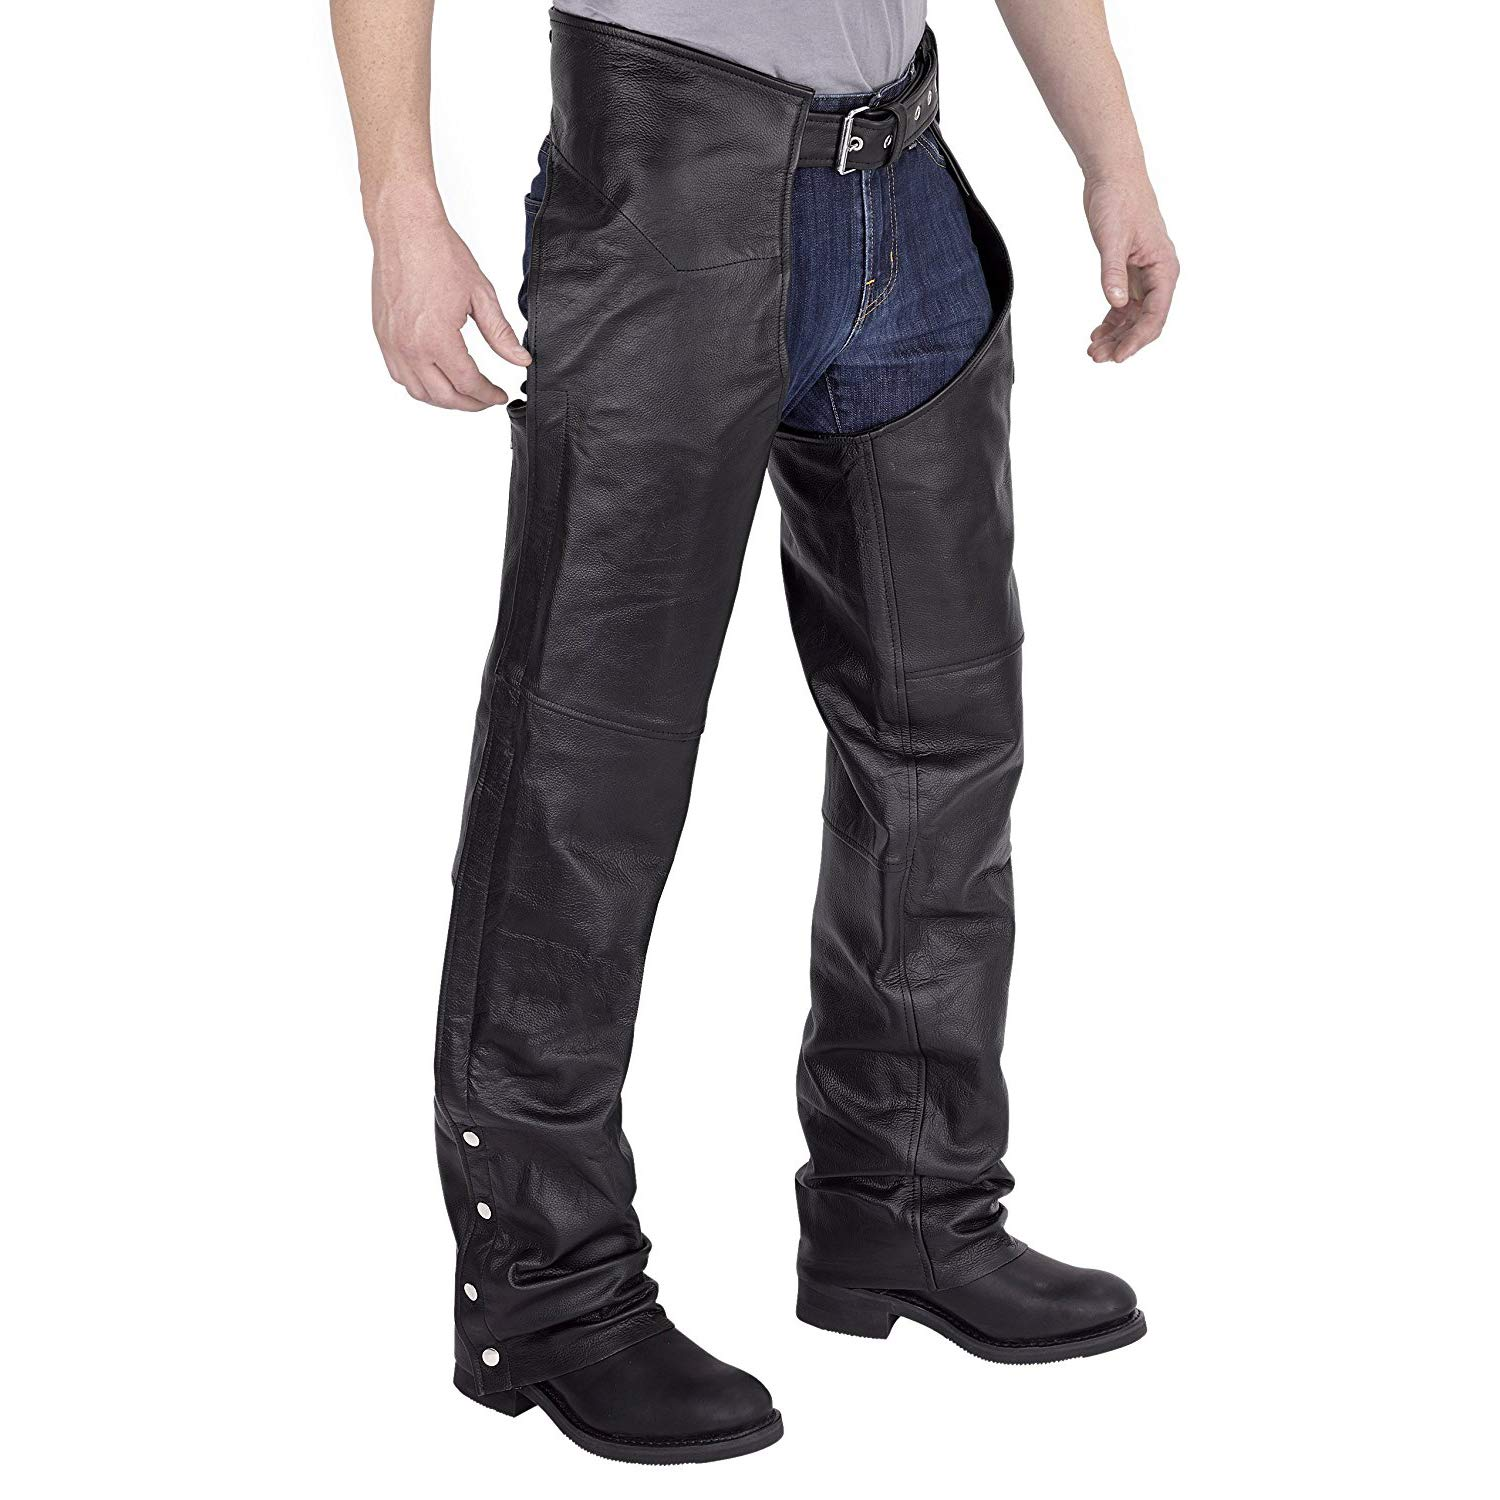 Viking Cycle Leather Chaps - Plain Motorcycle Leather Chaps For Men